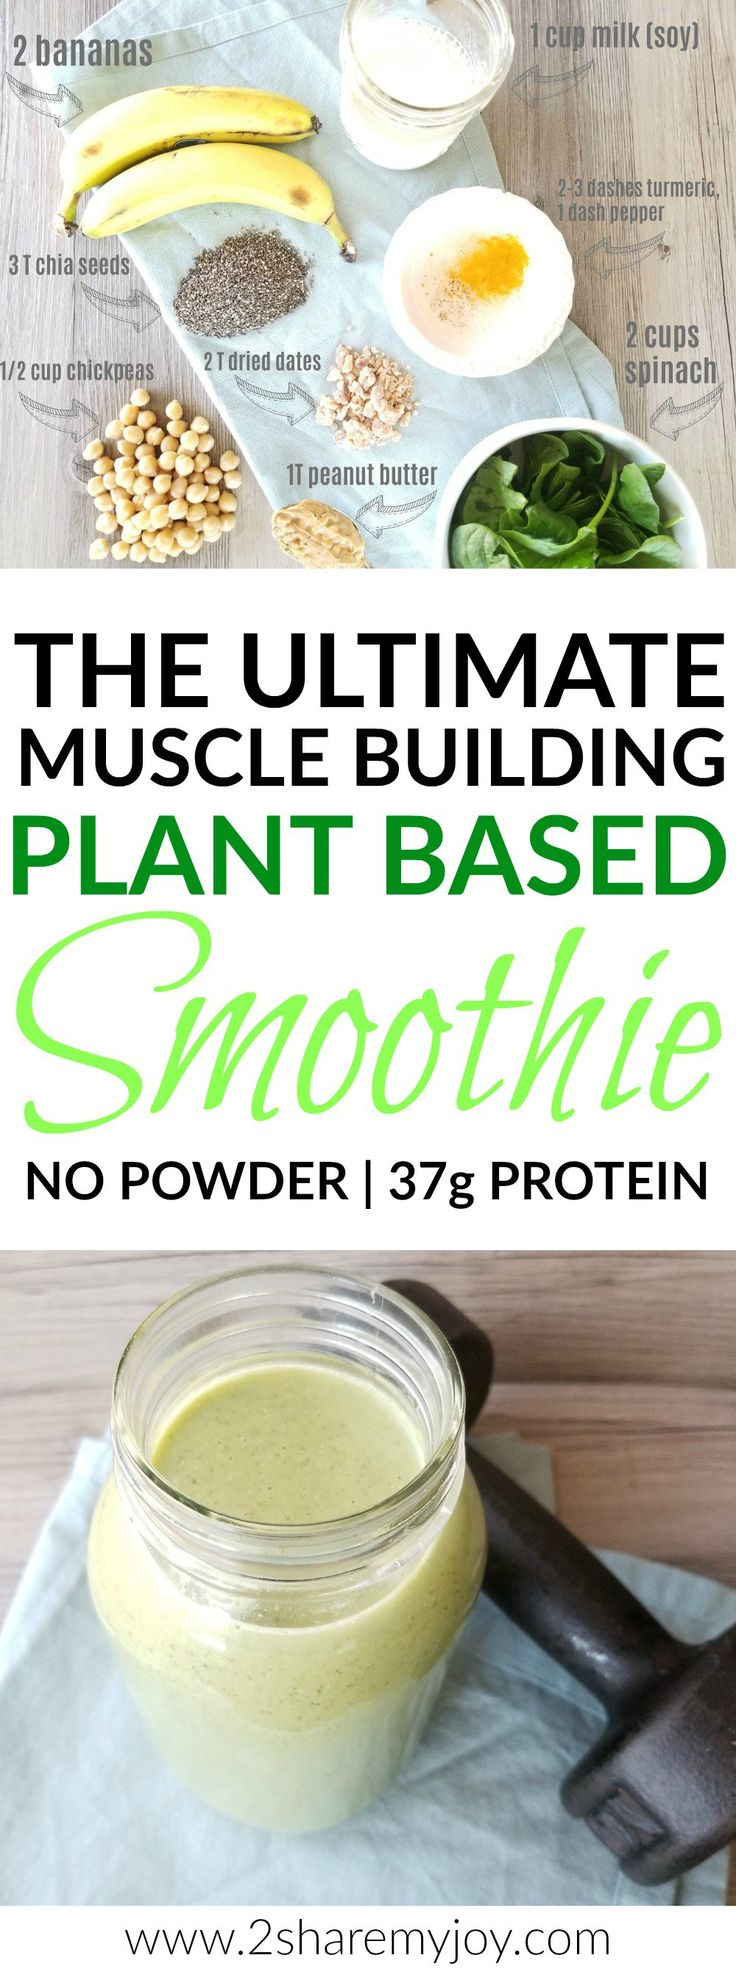 The Ultimate Muscle Building Vegan Smoothie for mega gains contains 950 calories, 37g proteins, 34 g fiber, and lots of vitamins and minerals. For this plant based protein green smoothie you don't need any powder. I like to drink this clean eating whole food smoothie in the mornings as a protein breakfast shake, or after workout. It is also gluten free and works wonders for muscle gain.